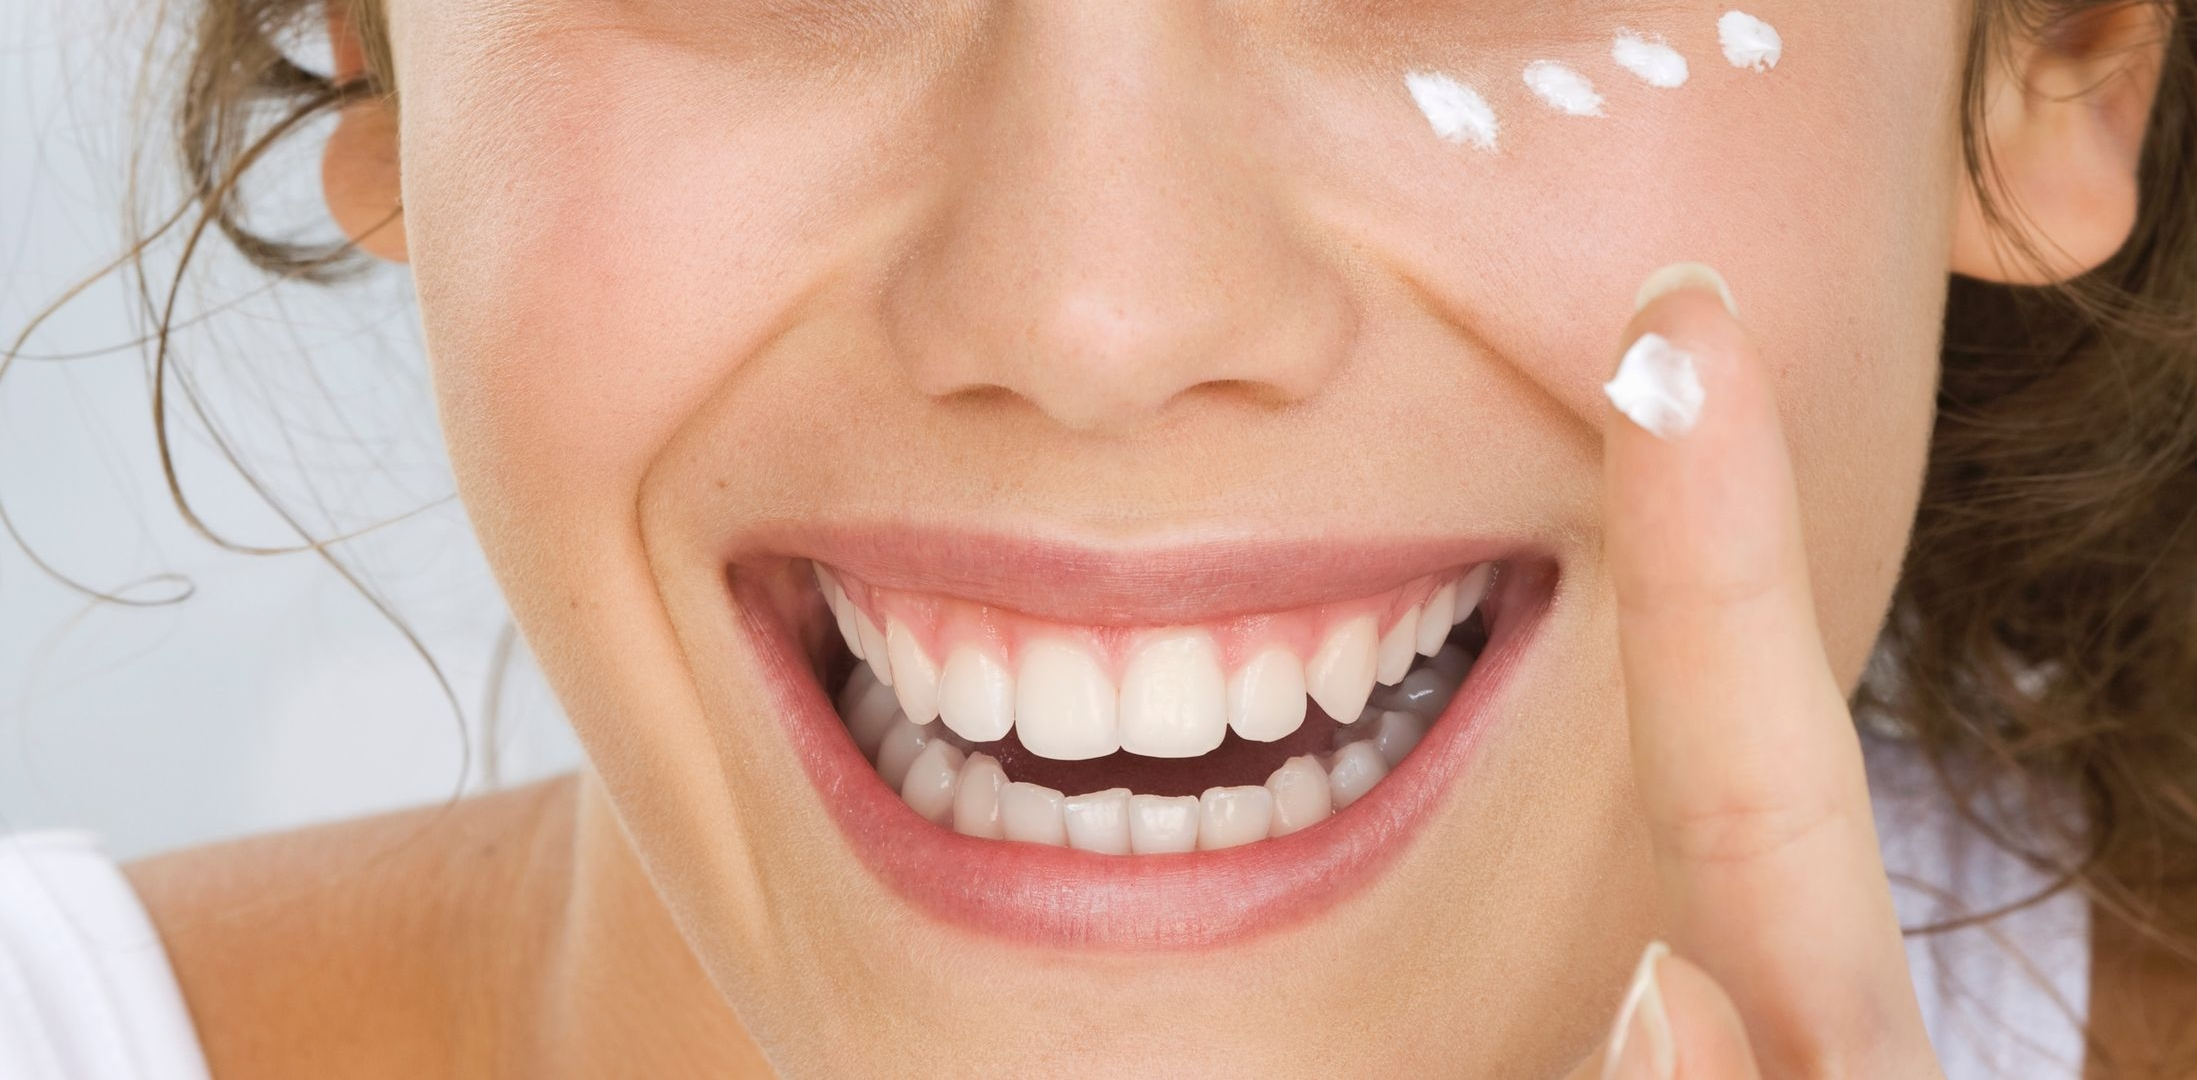 6967765Young-woman-putting-cream-on-face-smiling-2.jpg